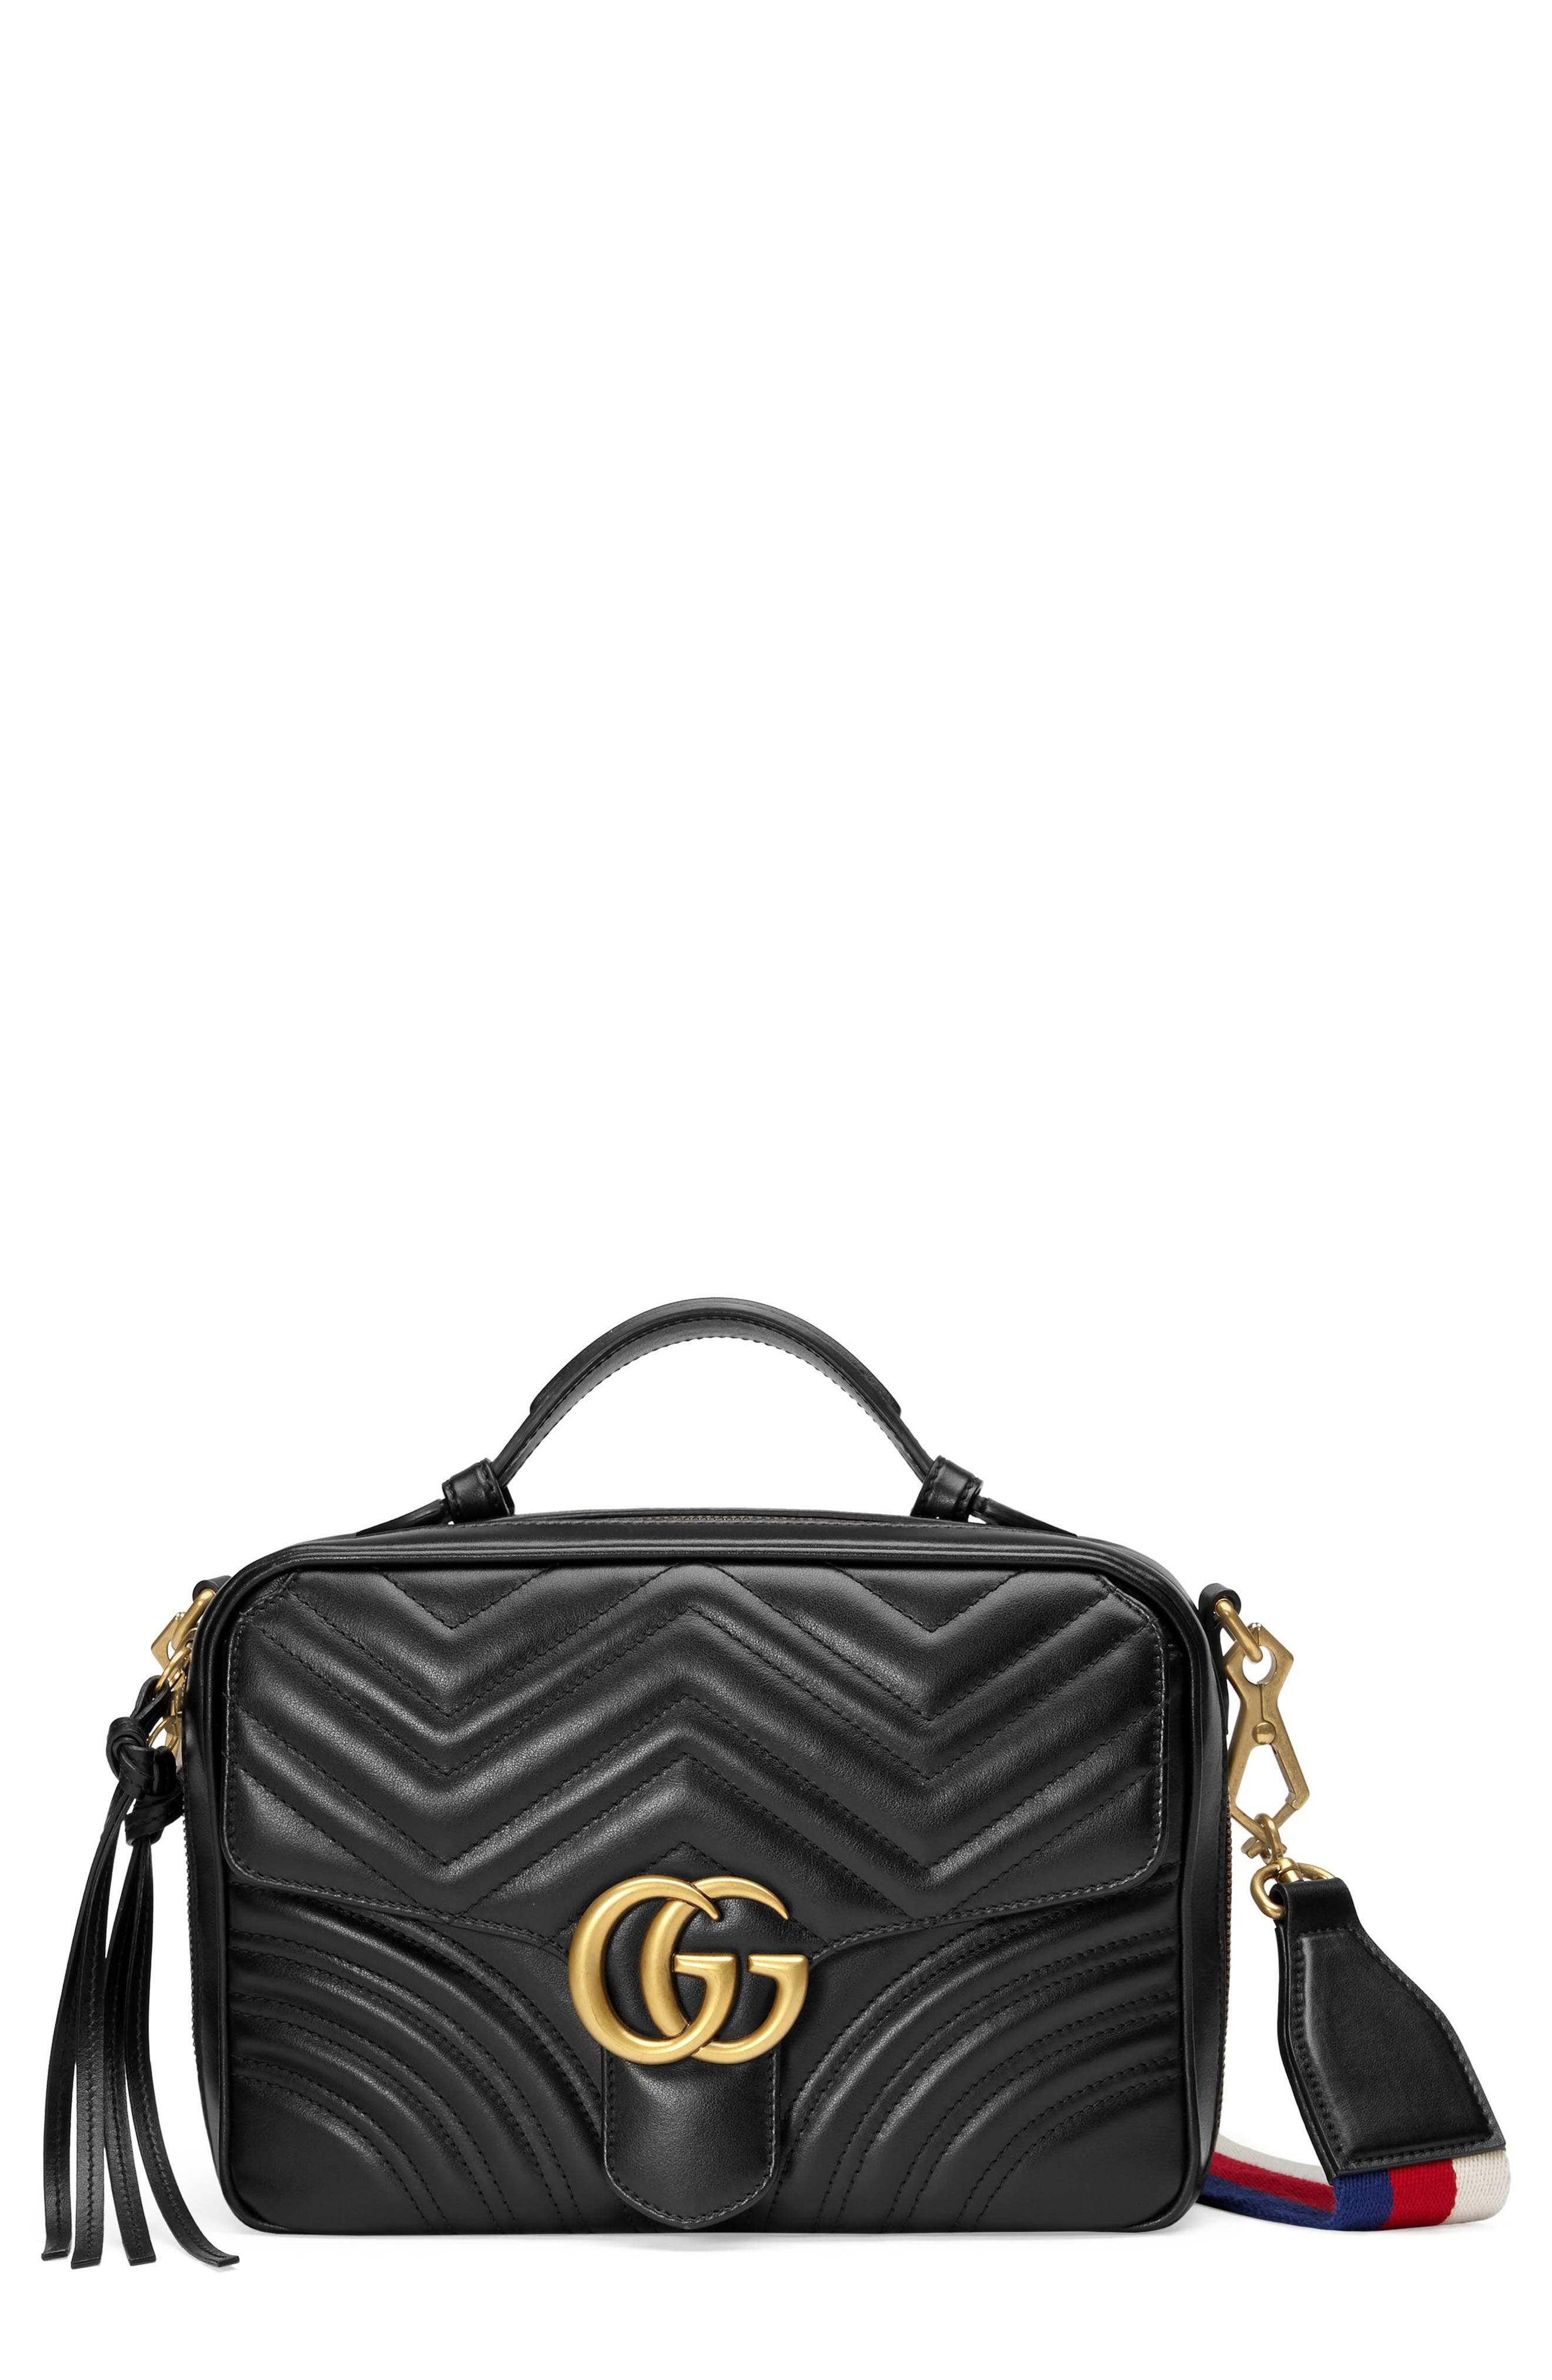 en designers bag leather quilt handbags quilted gb womens chanel women black ref shopping bags